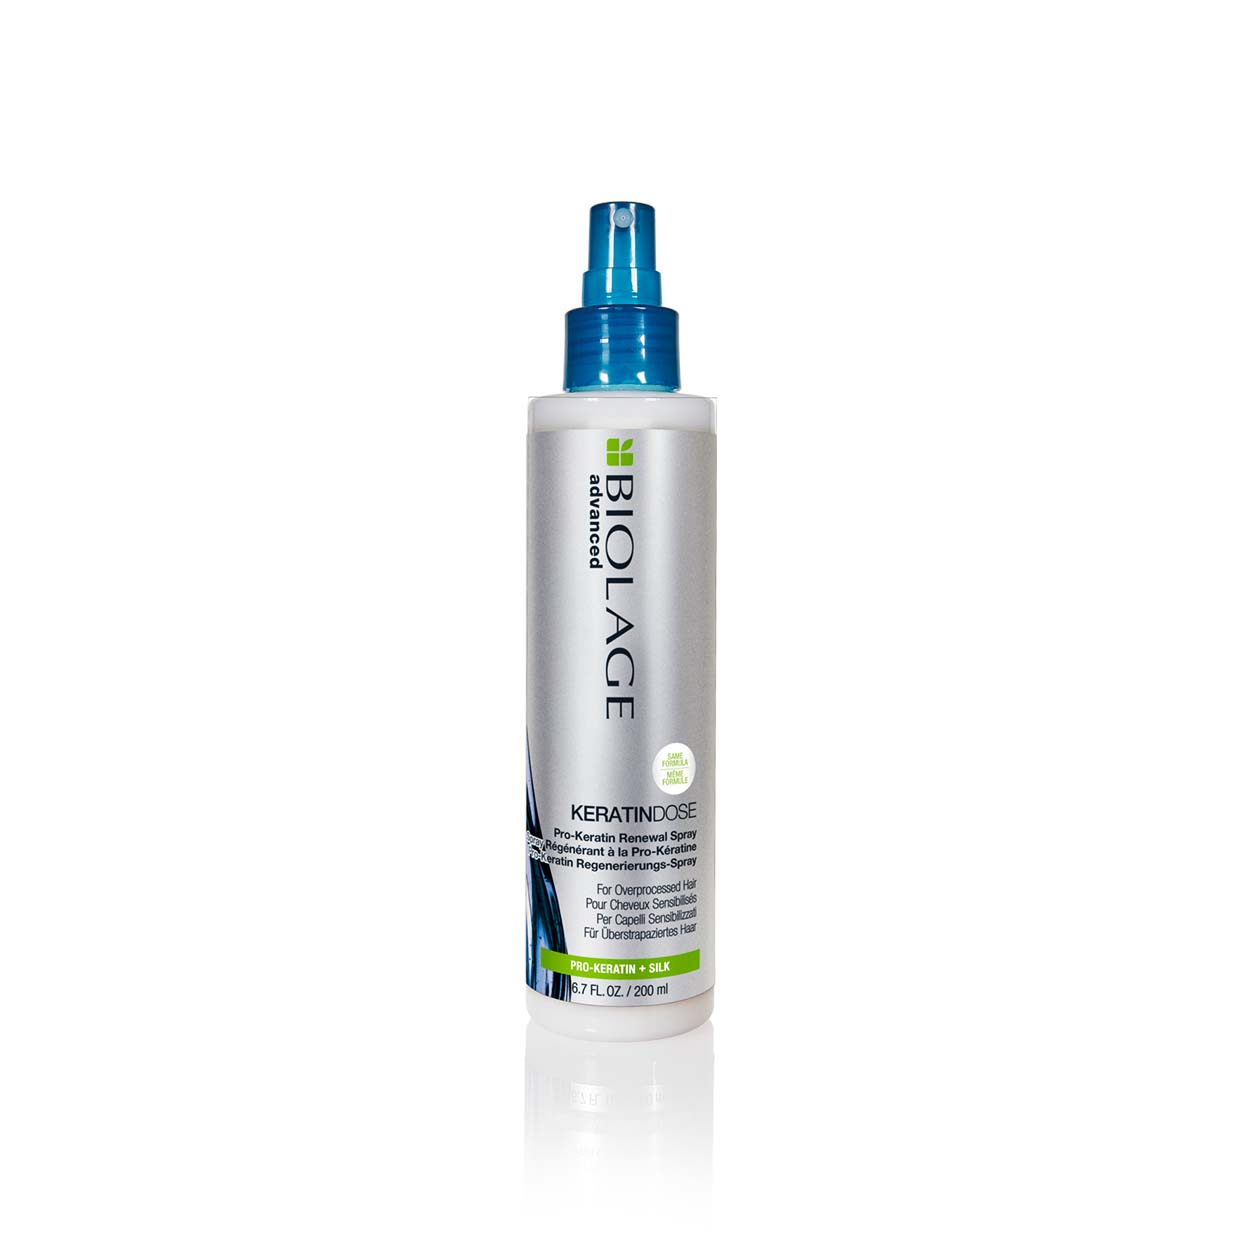 Biolage Advanced KeratinDose Damage Care Renewal Spray Nourishing Spray for Damaged Hair